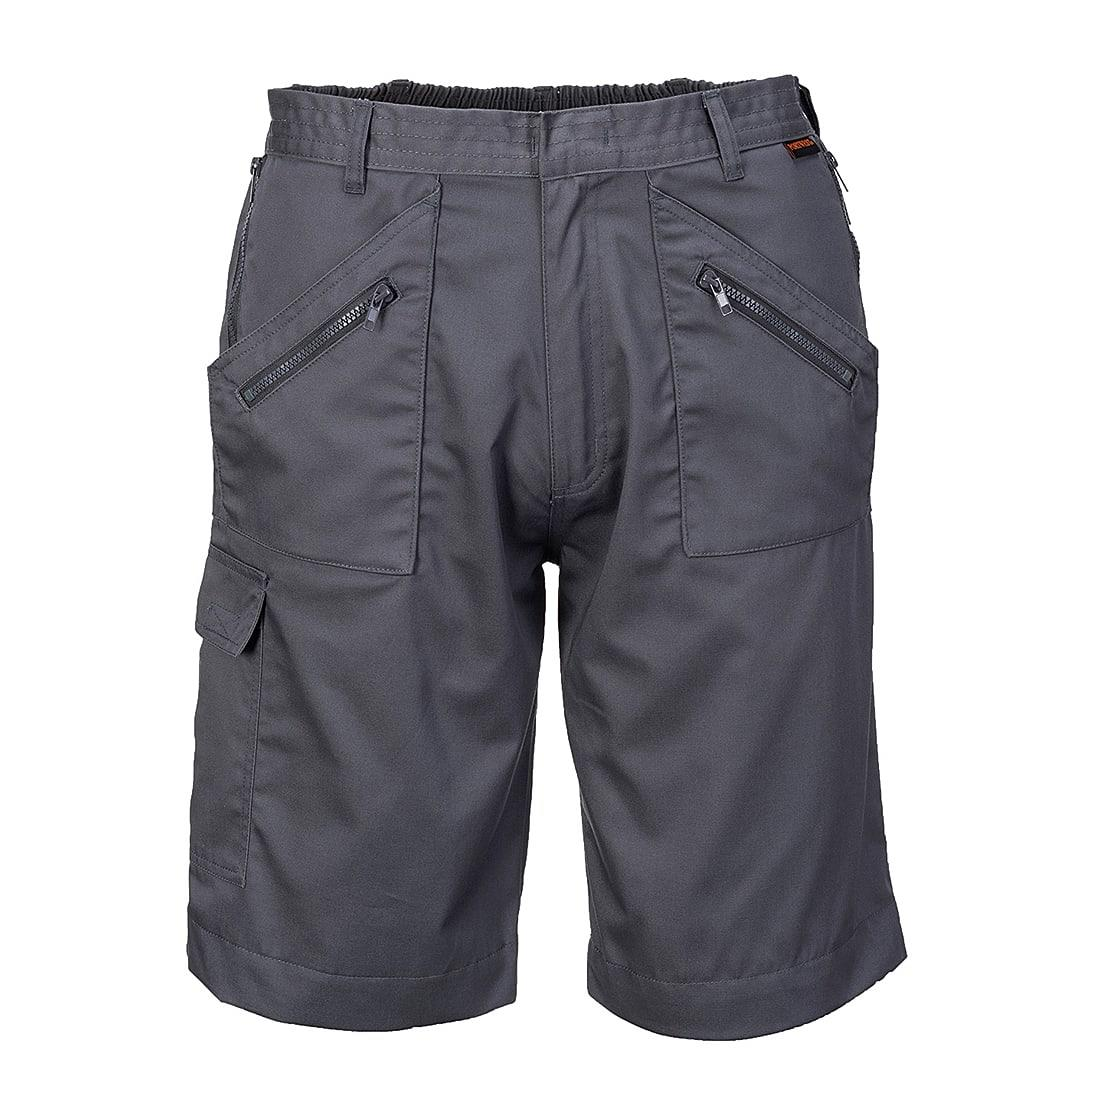 Portwest Action Shorts in Zoom (Product Code: S889)